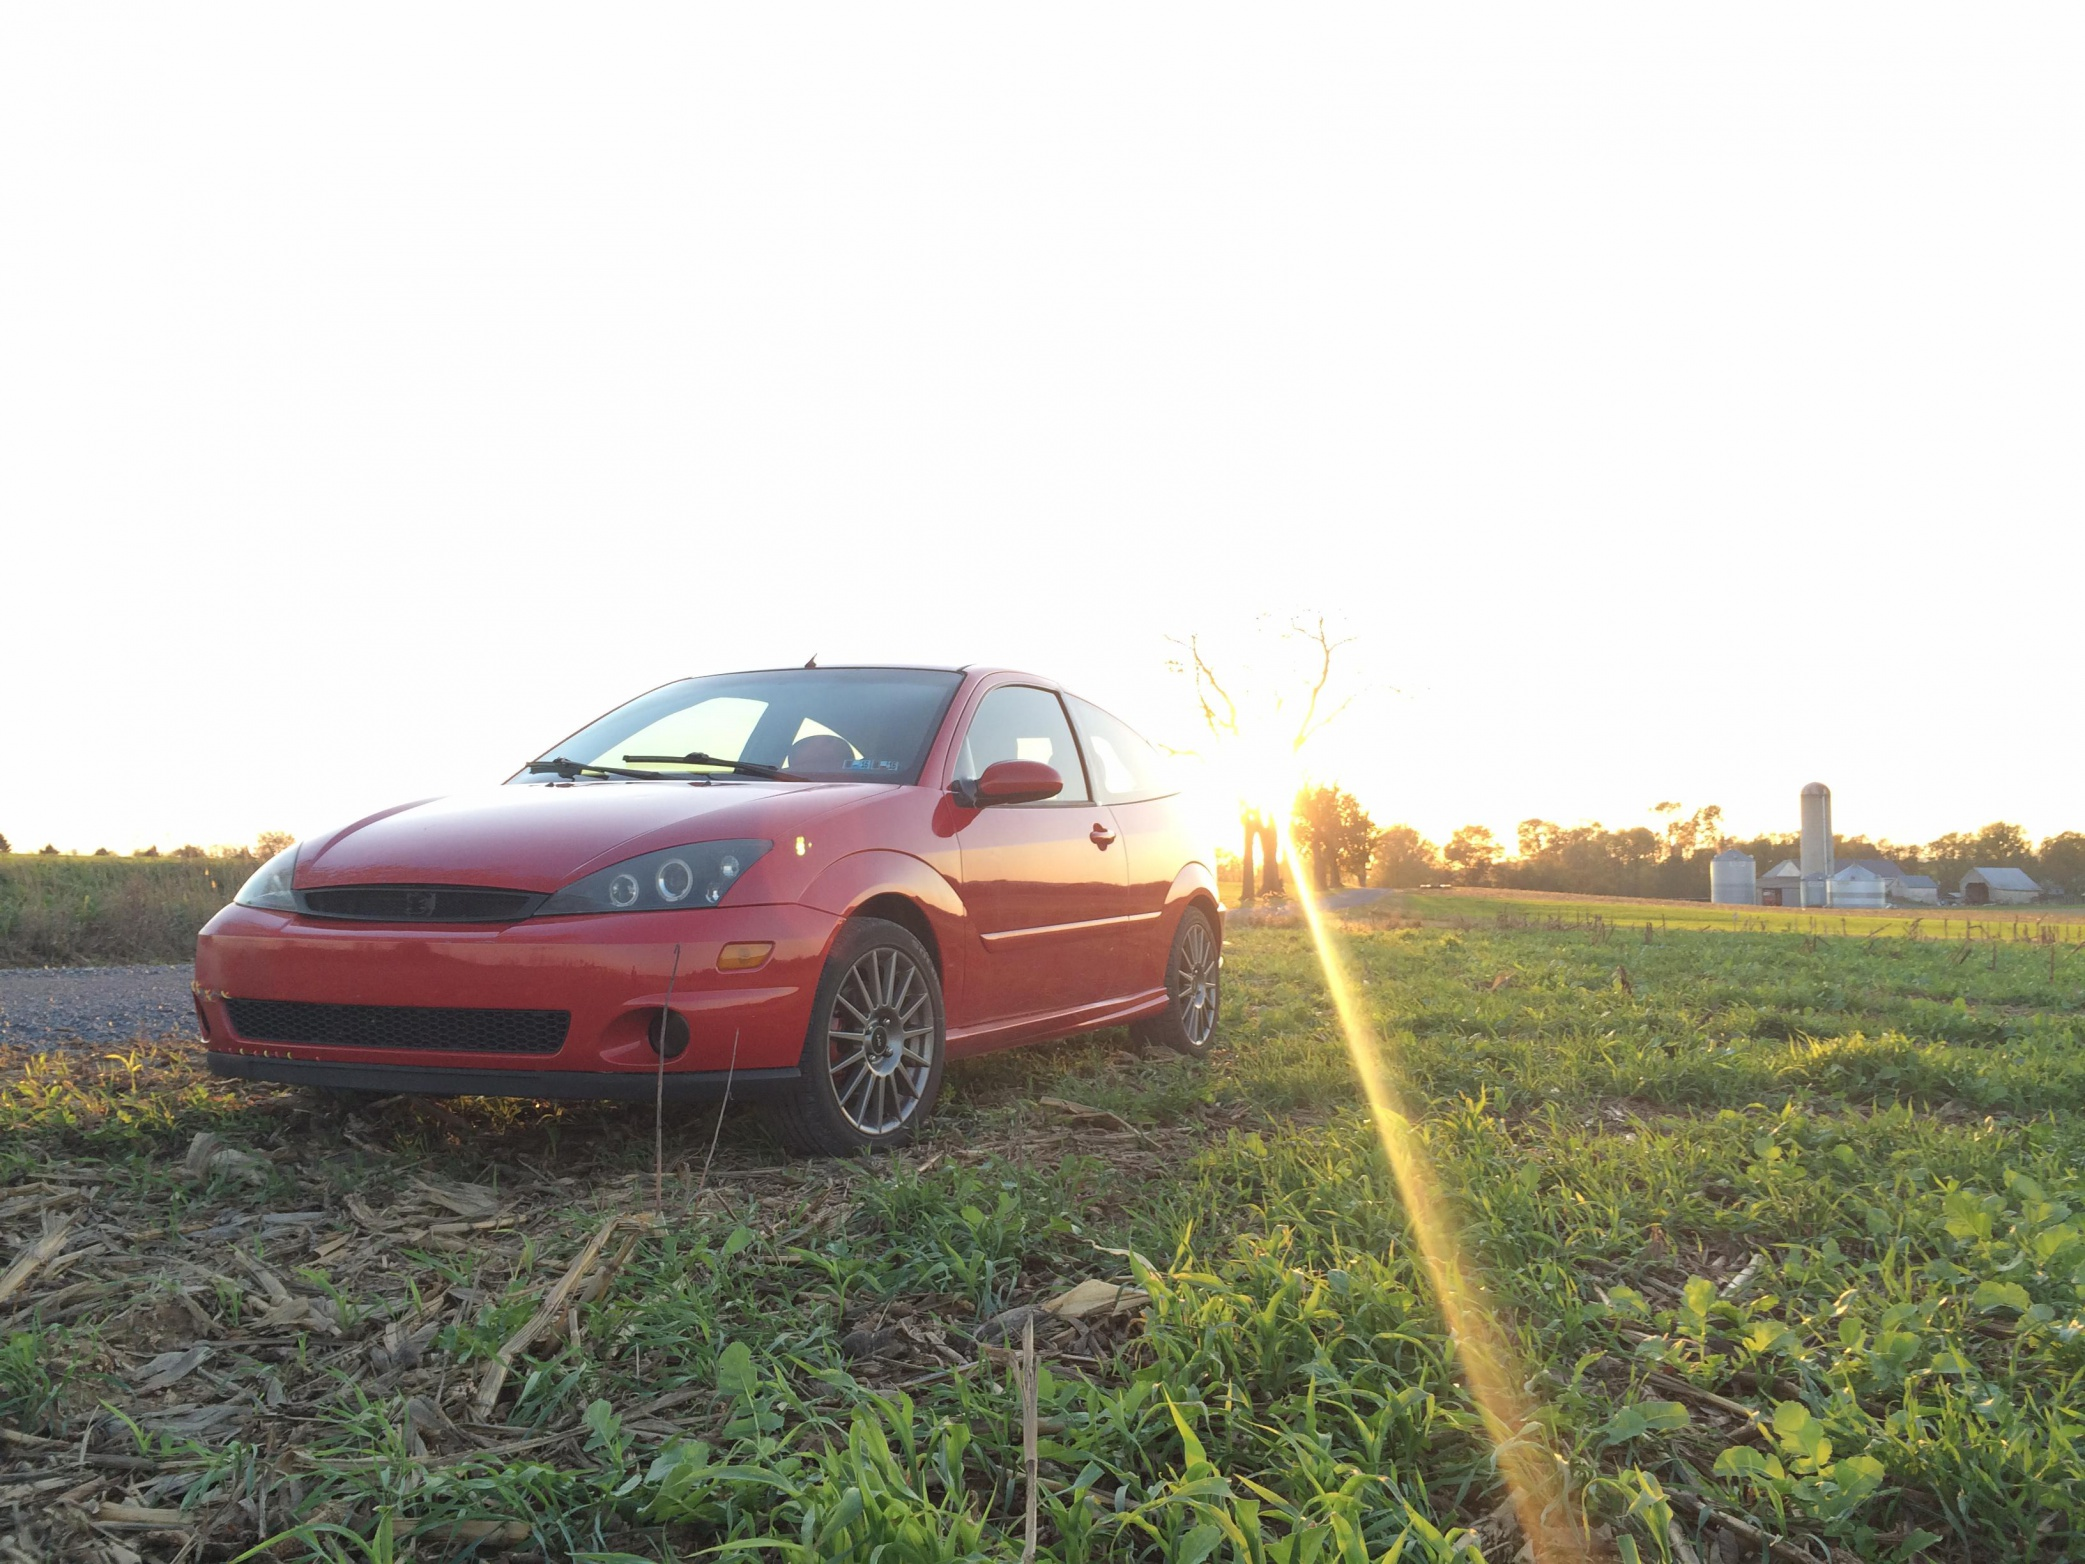 Svt rebuild and forced induction project-img_2675_1485952606950.jpg